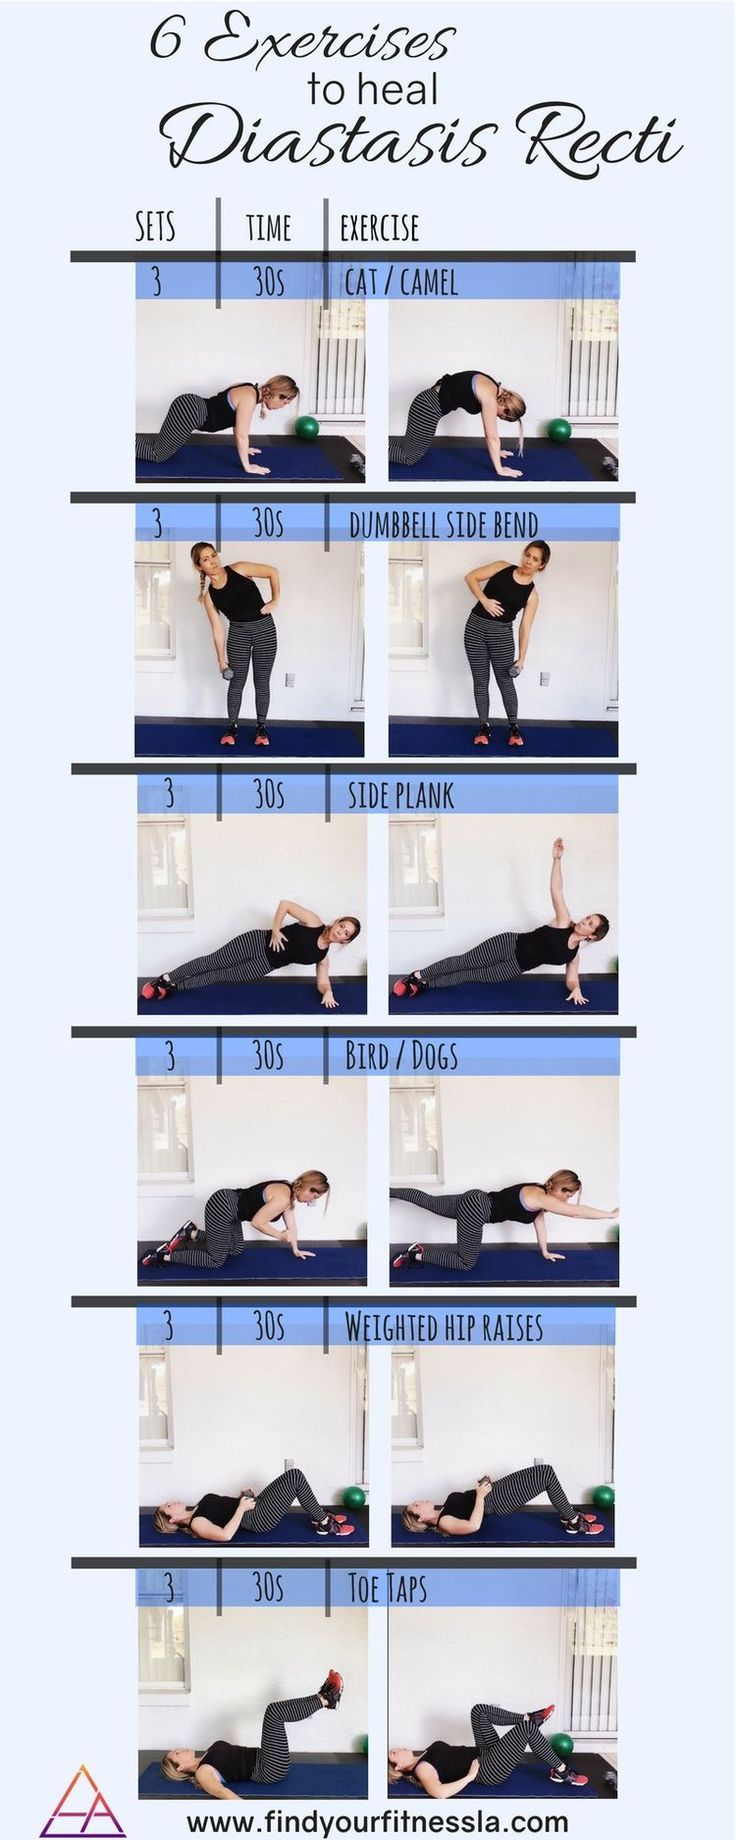 6 Exercises to heal Diastasis Recti. Prenatal and Postnatal core exercises. Tone your tummy with these 6 safe moves. No more mommy tummy, or pooch! #goodcoreexercises